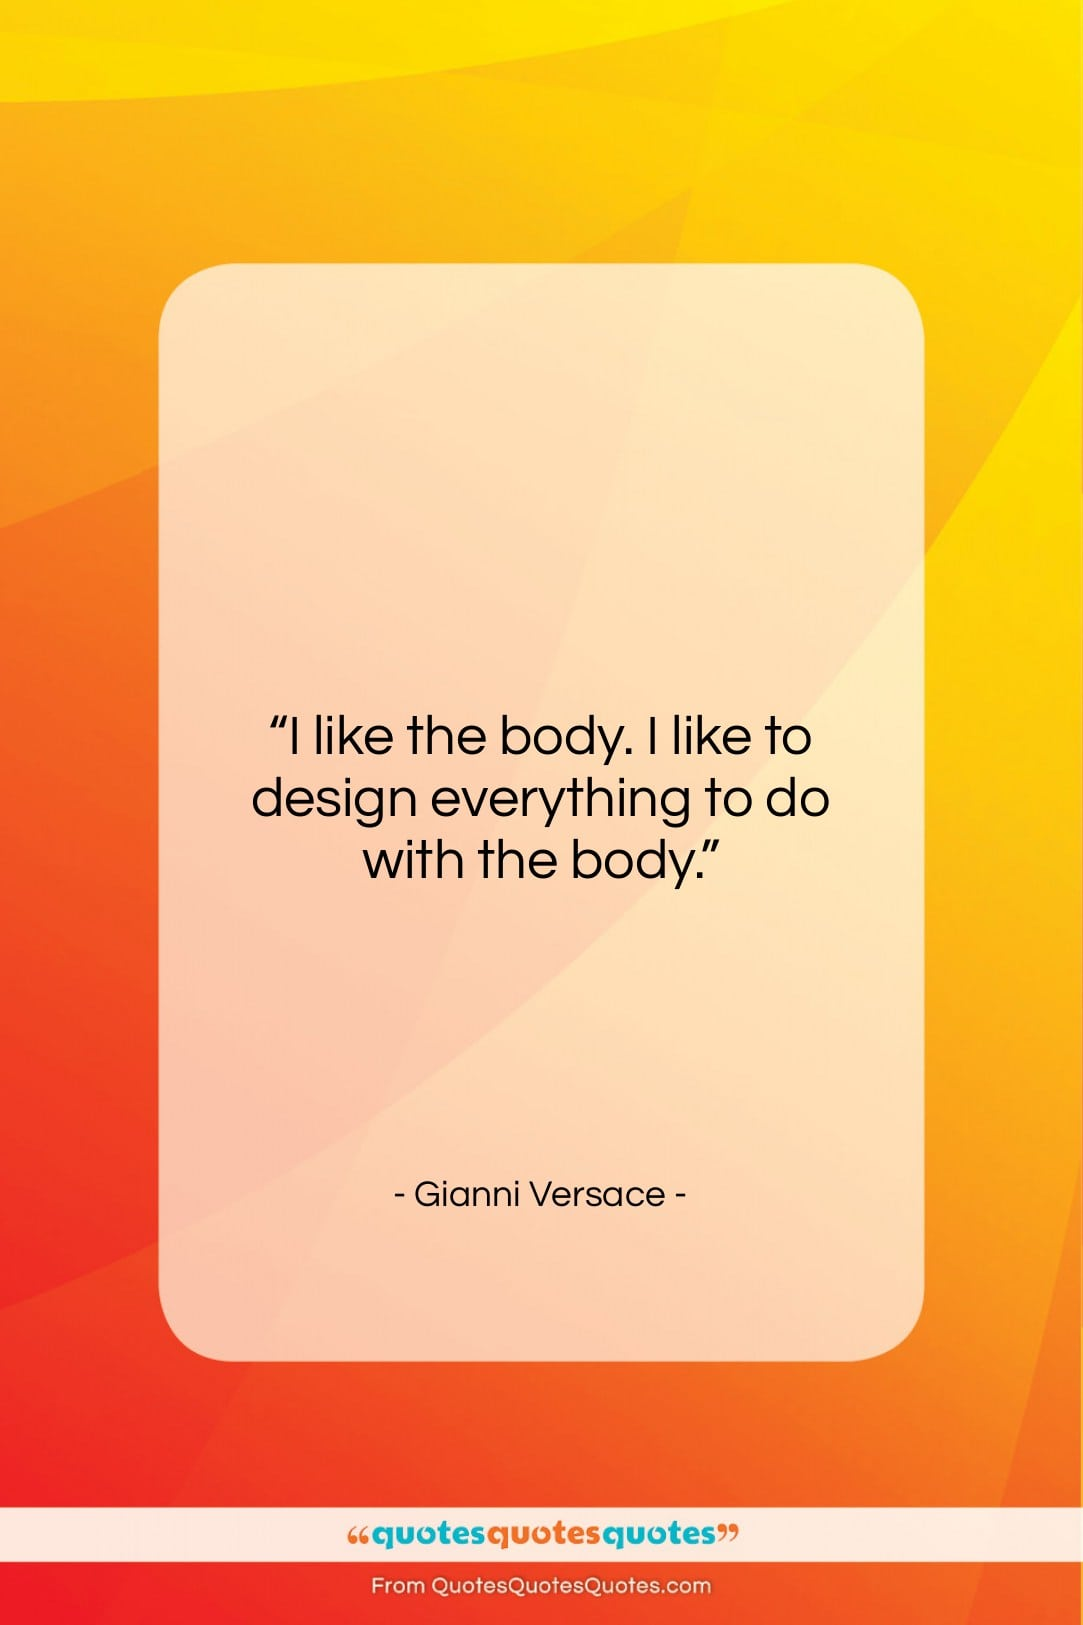 """Gianni Versace quote: """"I like the body. I like to…""""- at QuotesQuotesQuotes.com"""